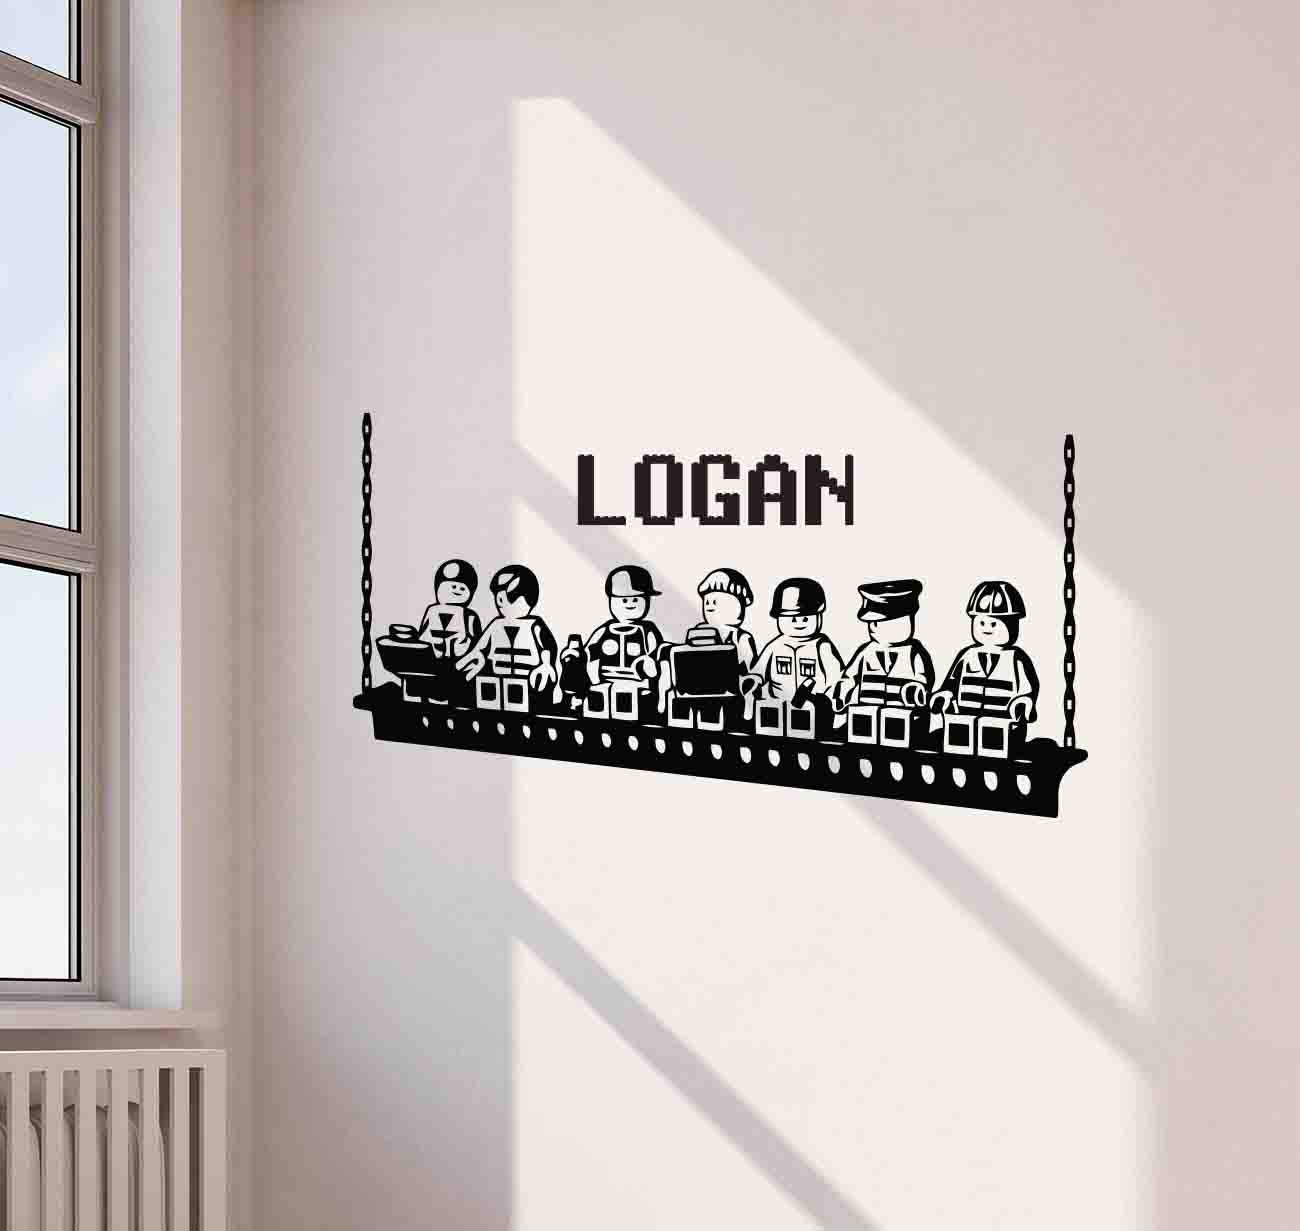 Personalized lego wall decal lego builders custom name children gift playroom vinyl sticker living room kids teens decorations home bedroom nursery decor